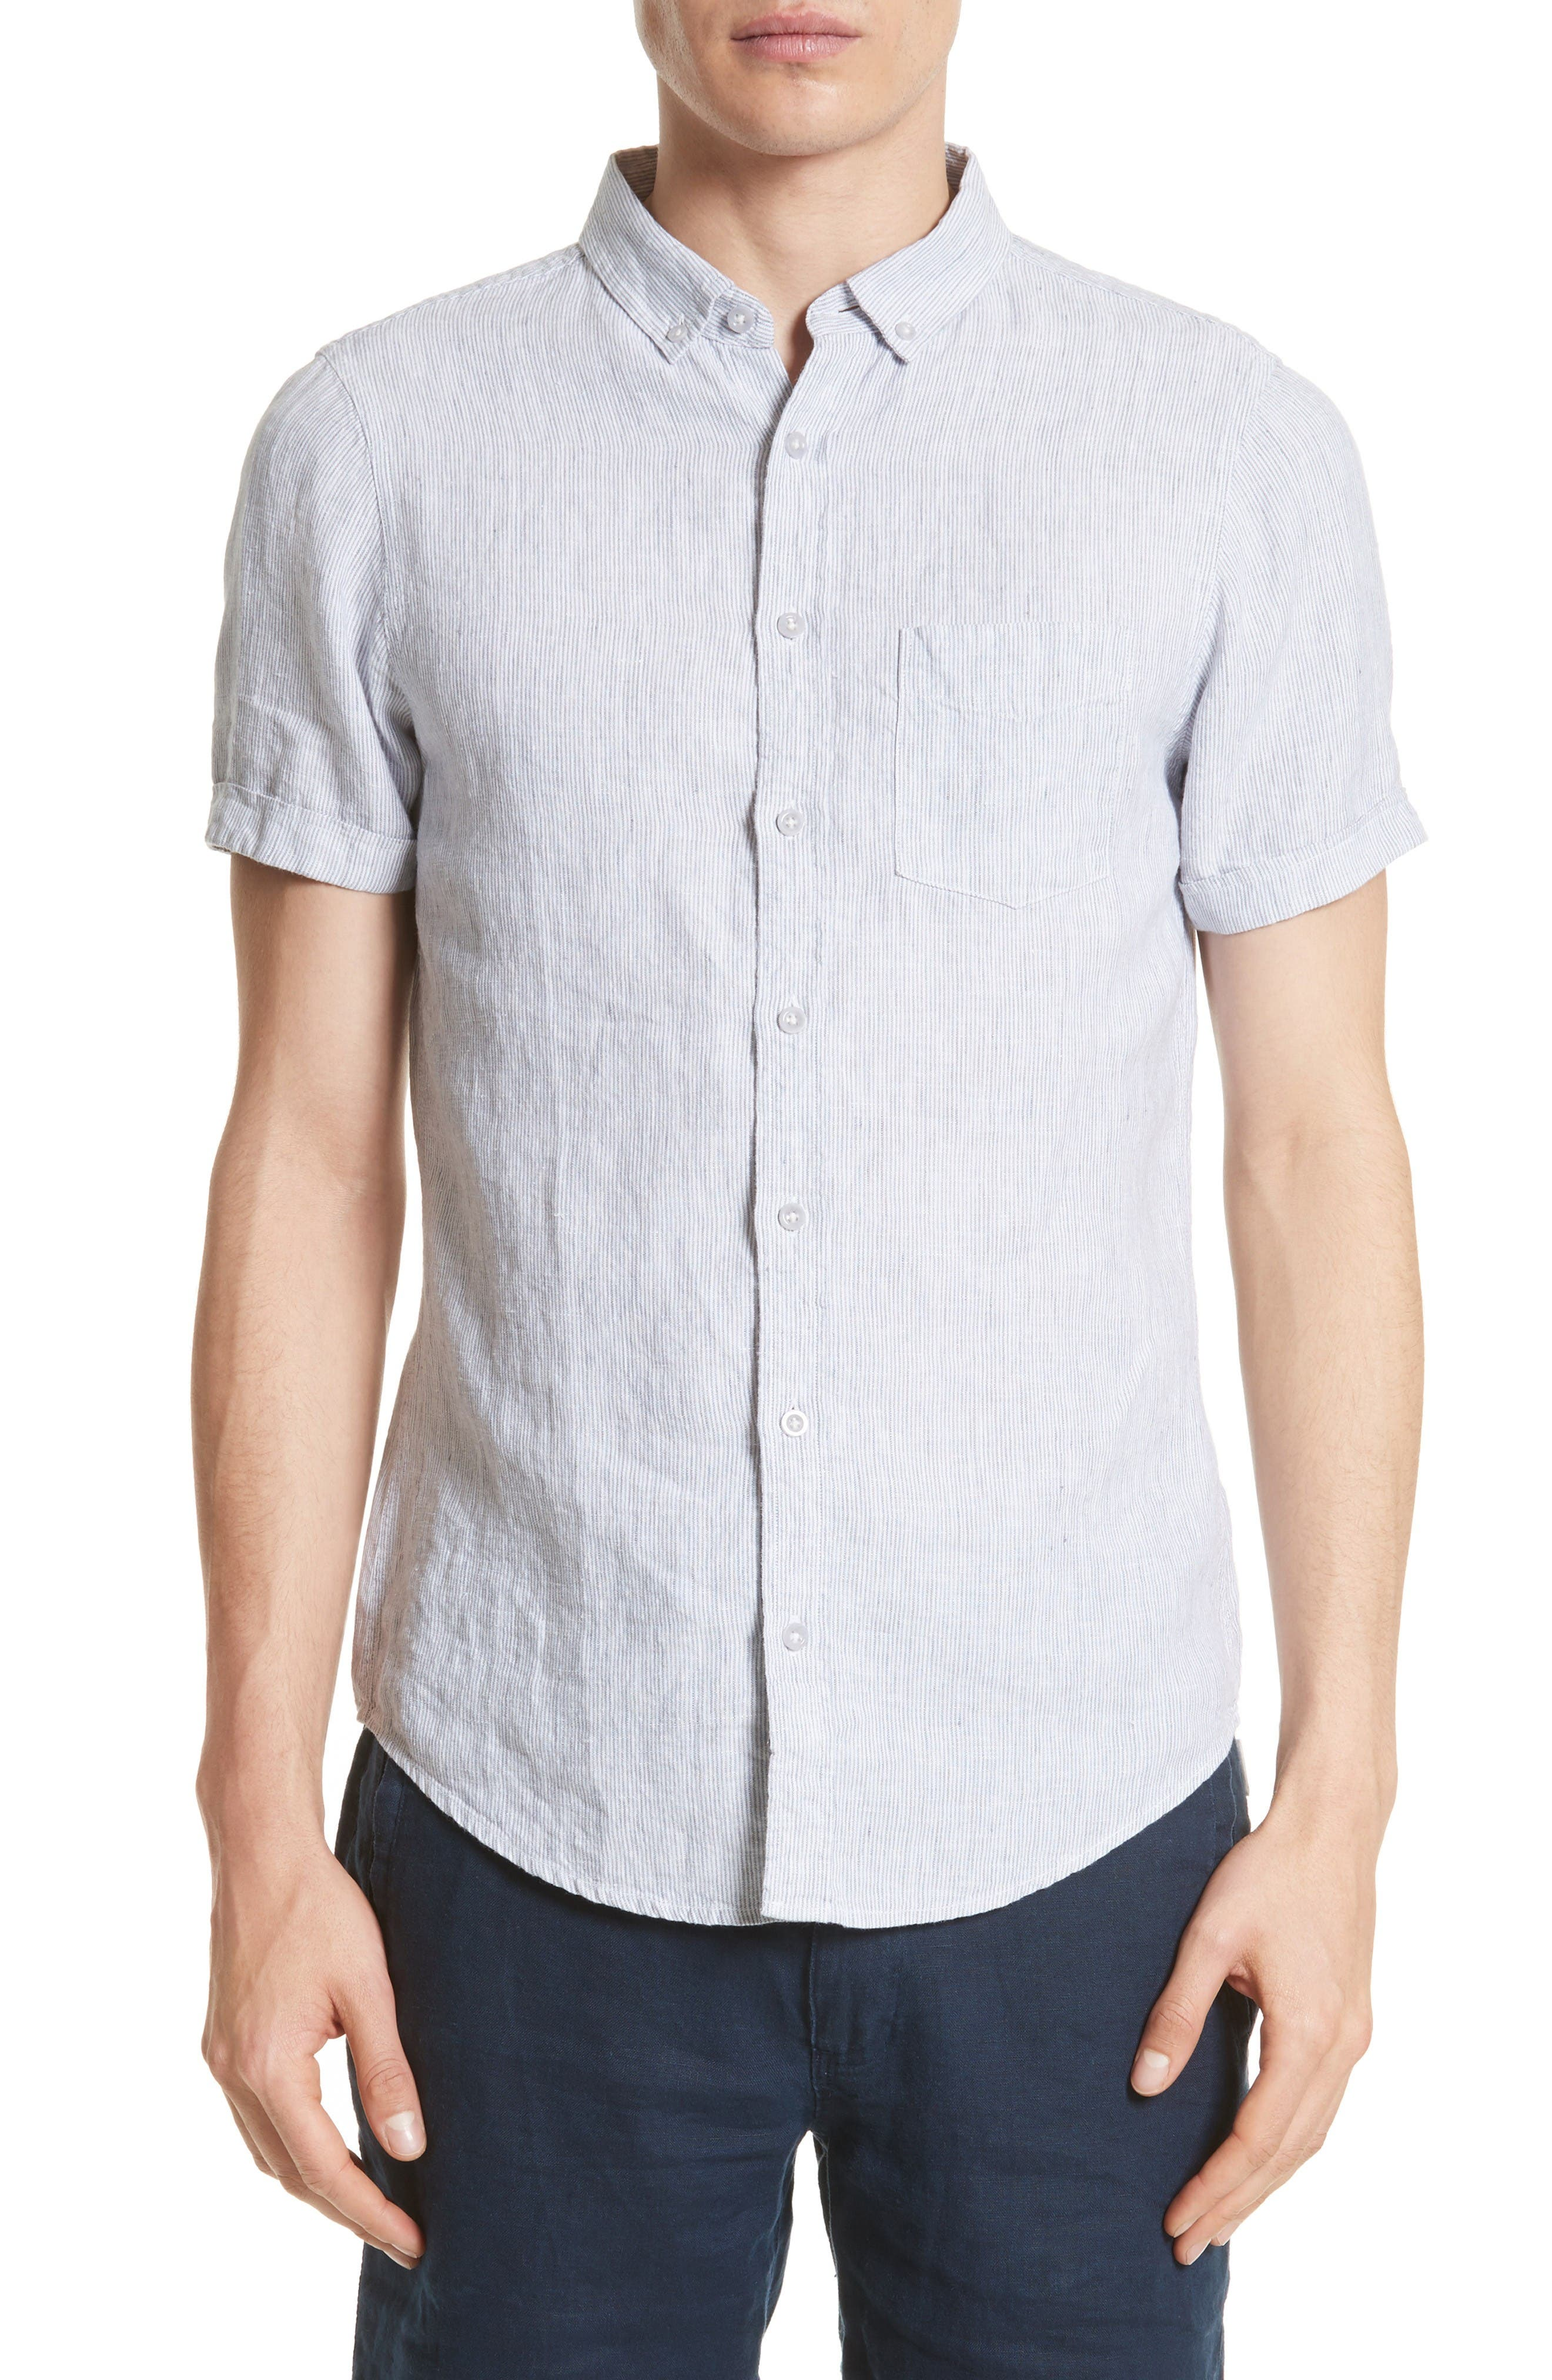 Alternate Image 1 Selected - ONIA Trim Fit Microstripe Linen Shirt